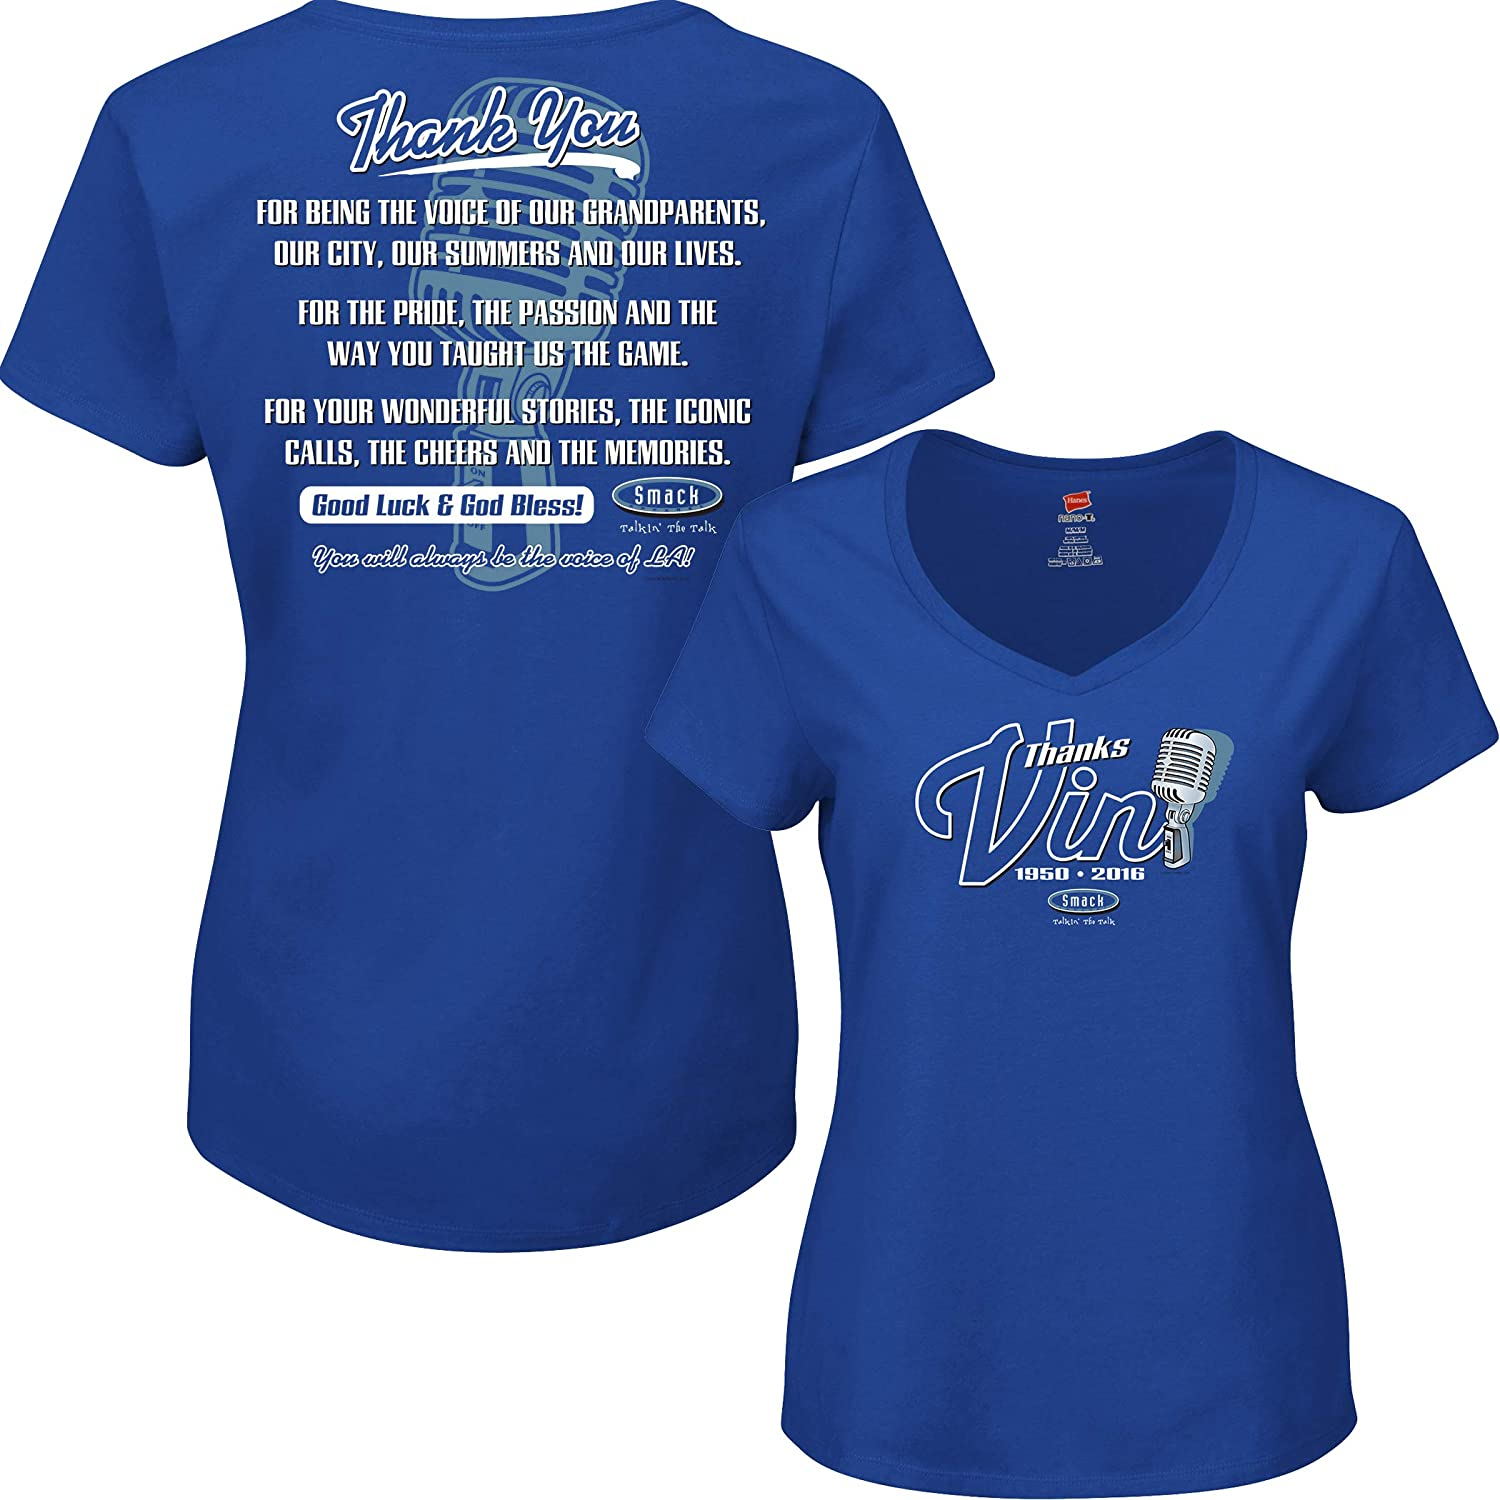 Iconic Supporters Cotton Jersey Shirt Los Angeles Dodgers